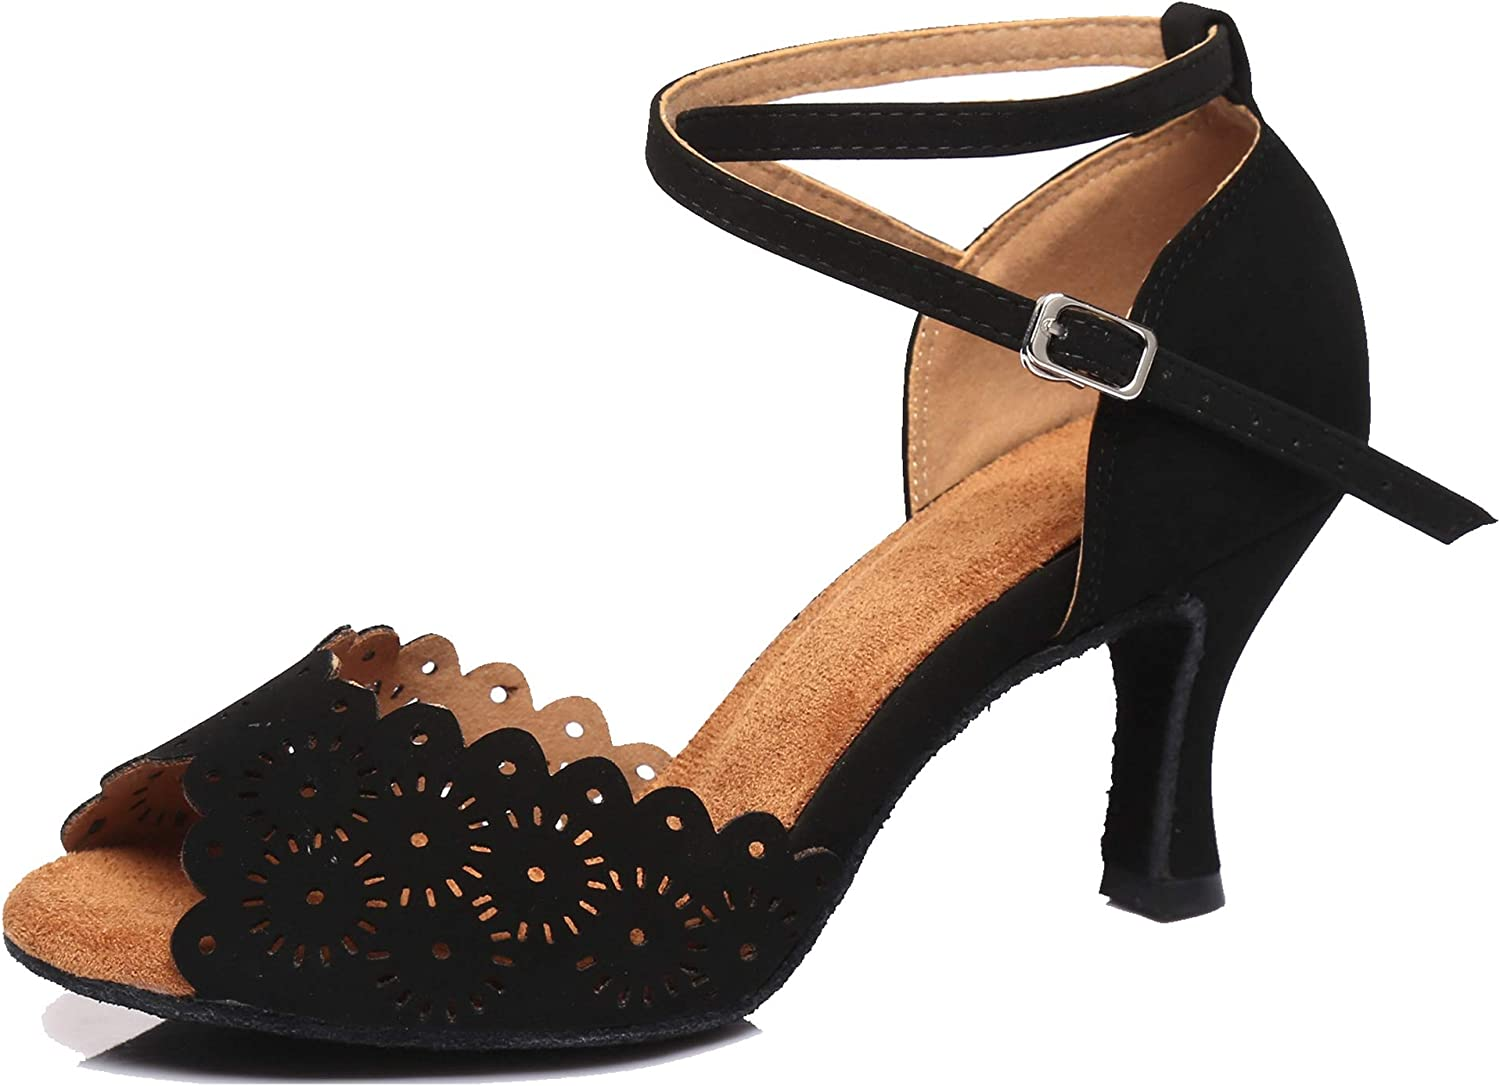 Minishion Women's Latin Salsa Free shipping on posting reviews Floral Pa Dance Suede Formal Austin Mall Shoes